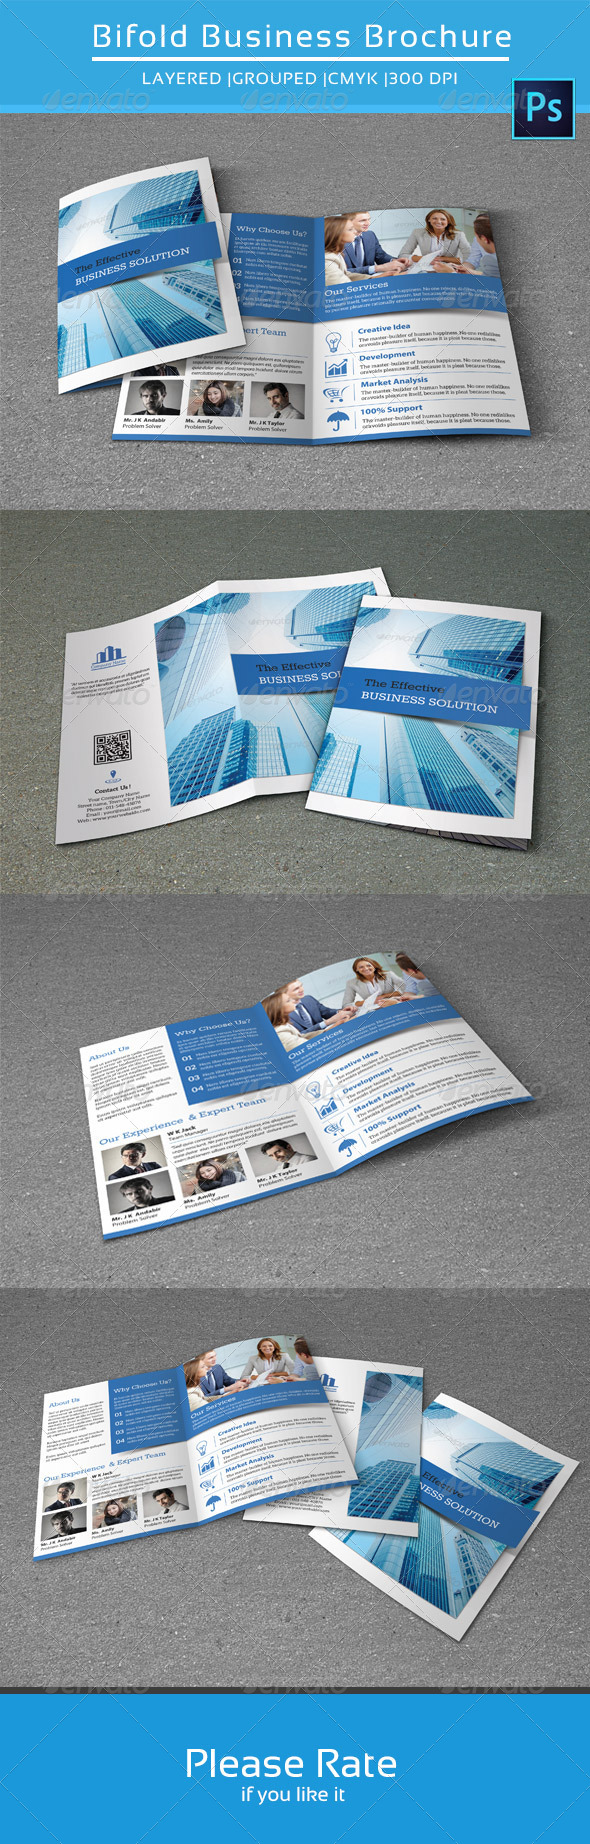 Bifold Business Brochure-V114